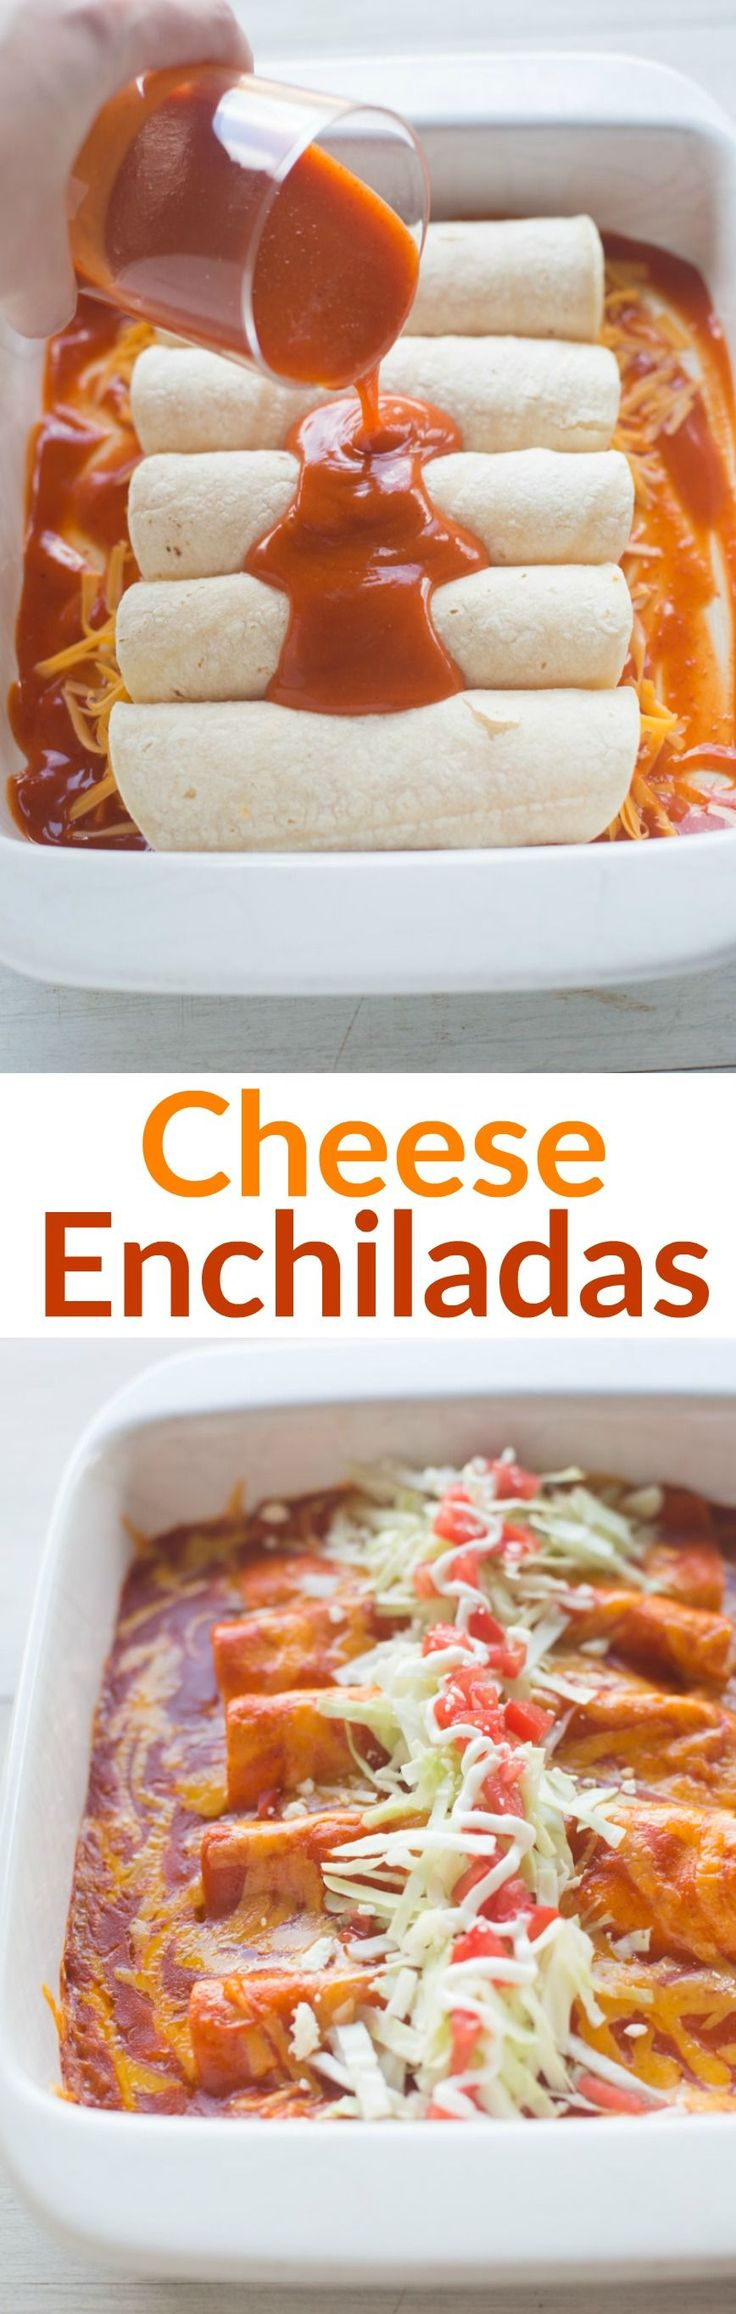 The BEST homemade Cheese Enchiladas! Our favorite authentic cheese enchiladas…